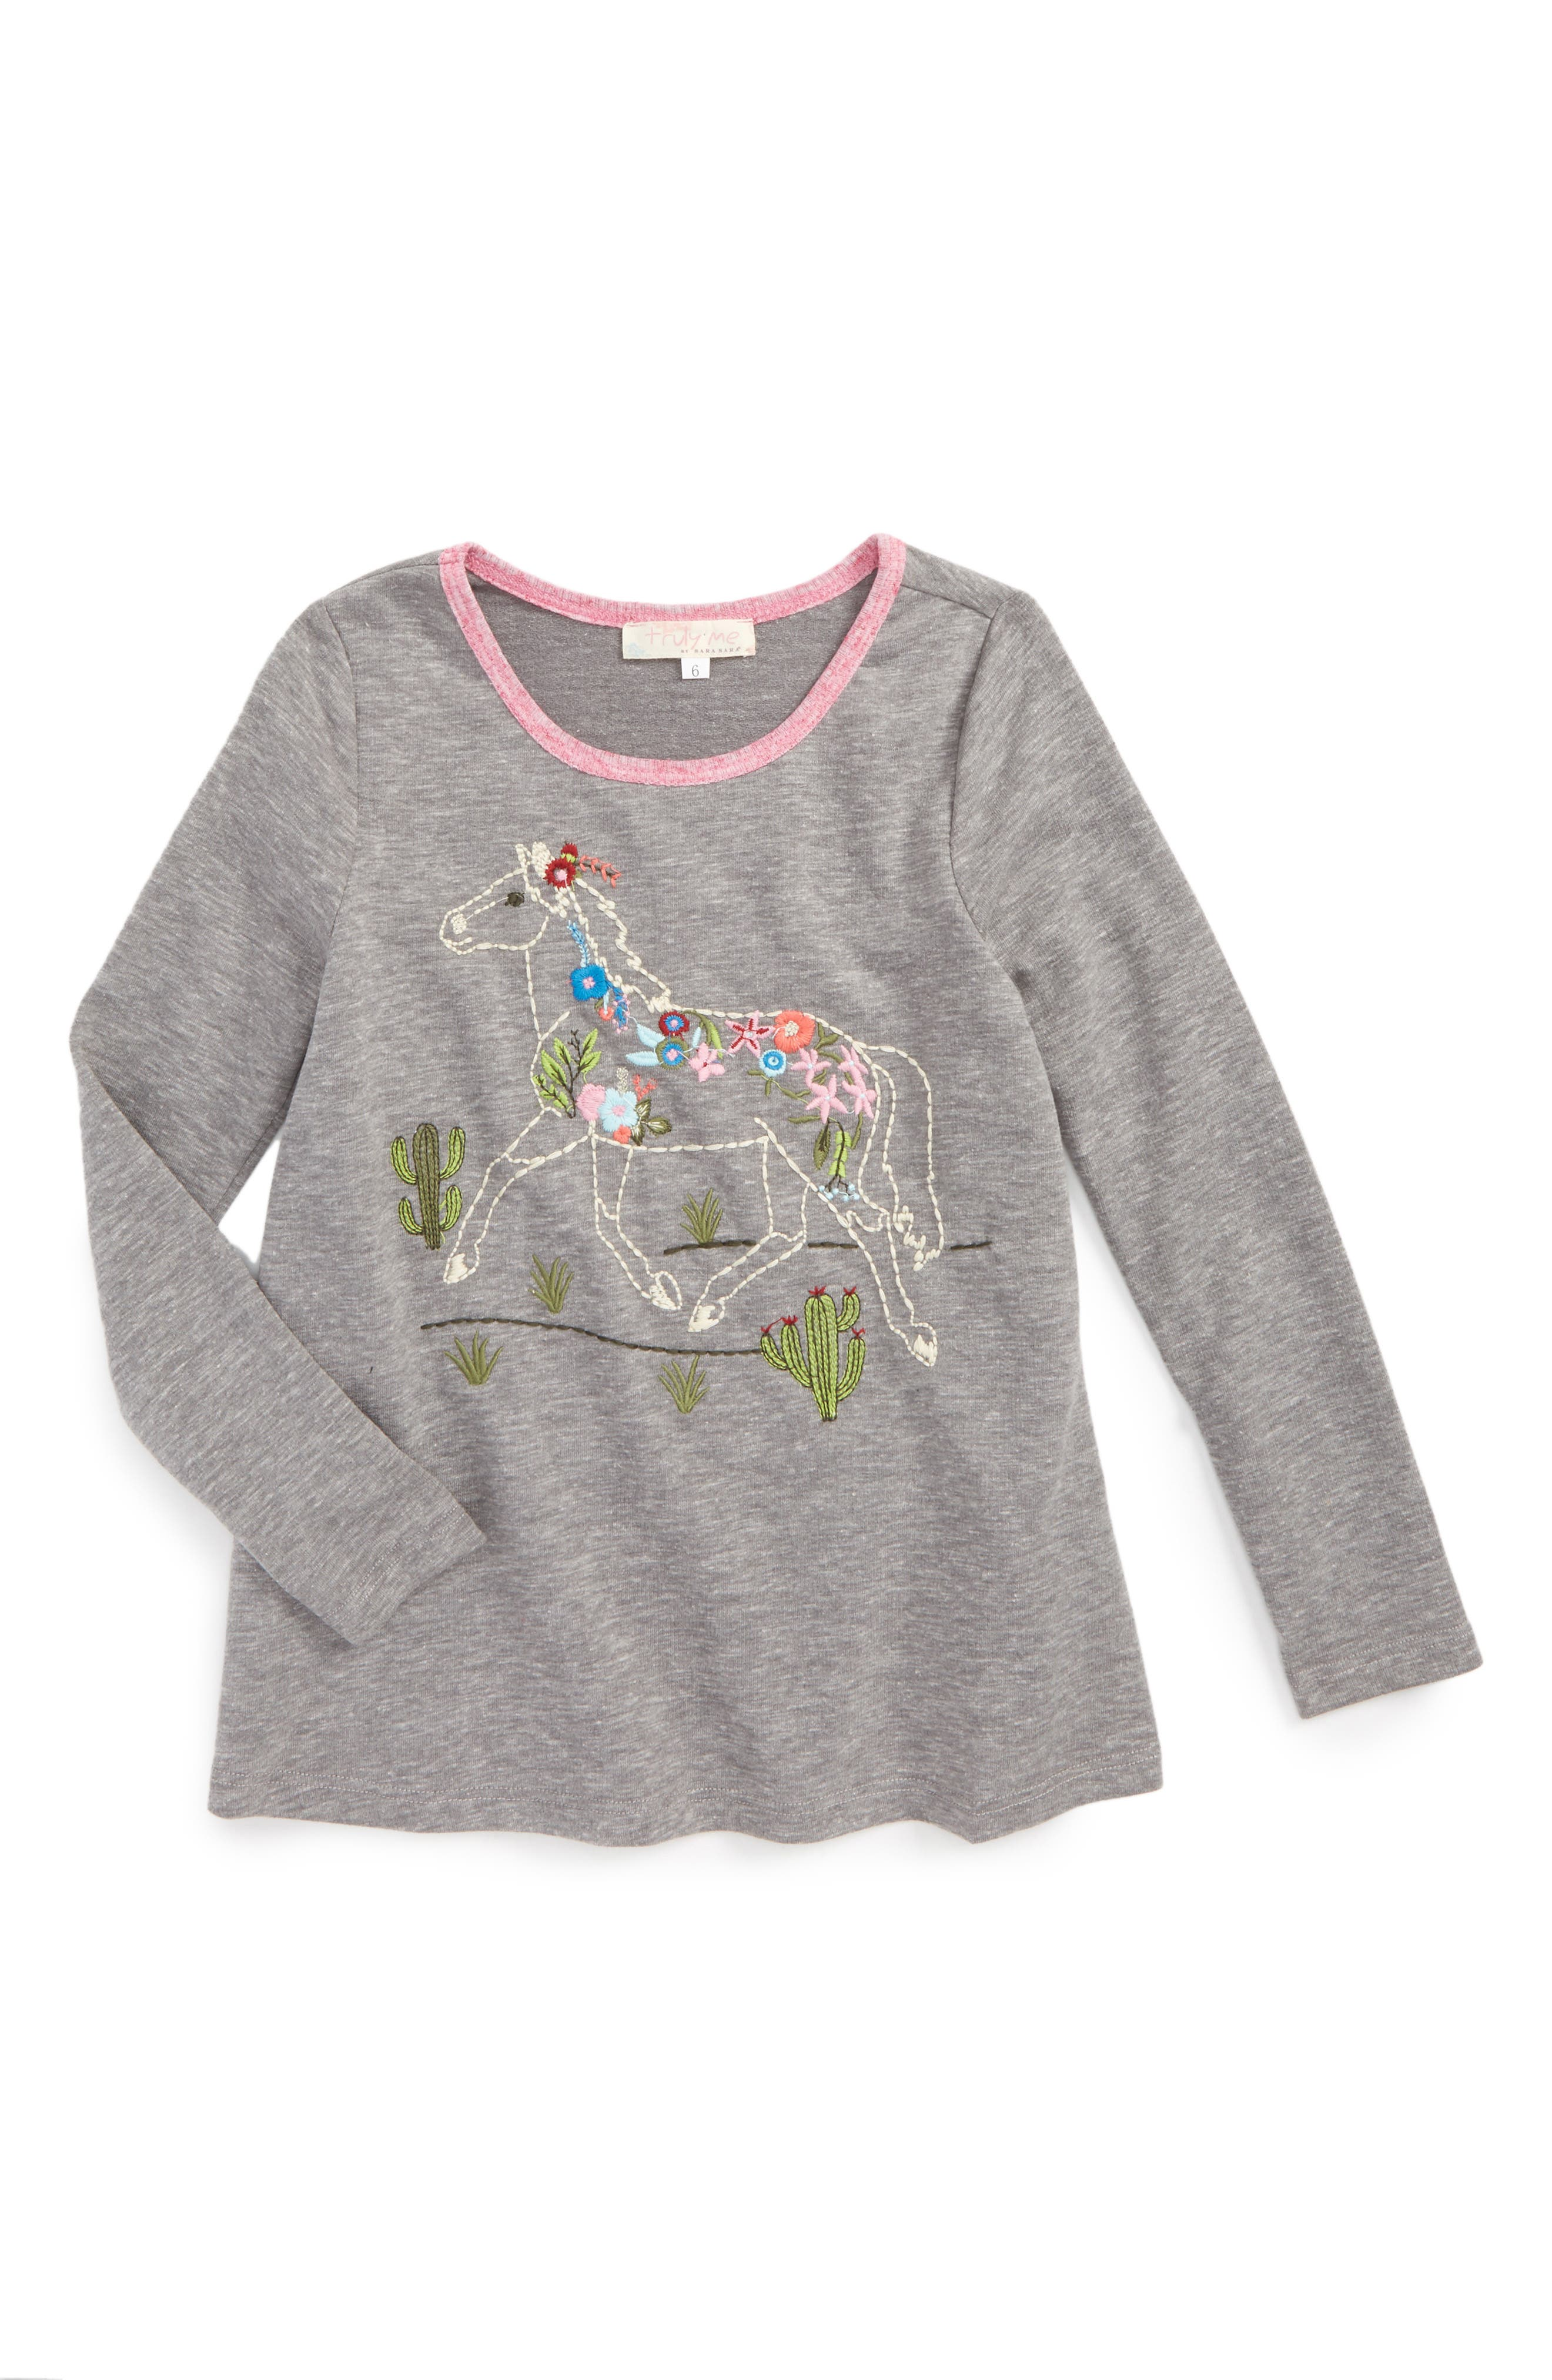 Alternate Image 1 Selected - Truly Me Embroidered Horse Tee (Toddler Girls & Little Girls)